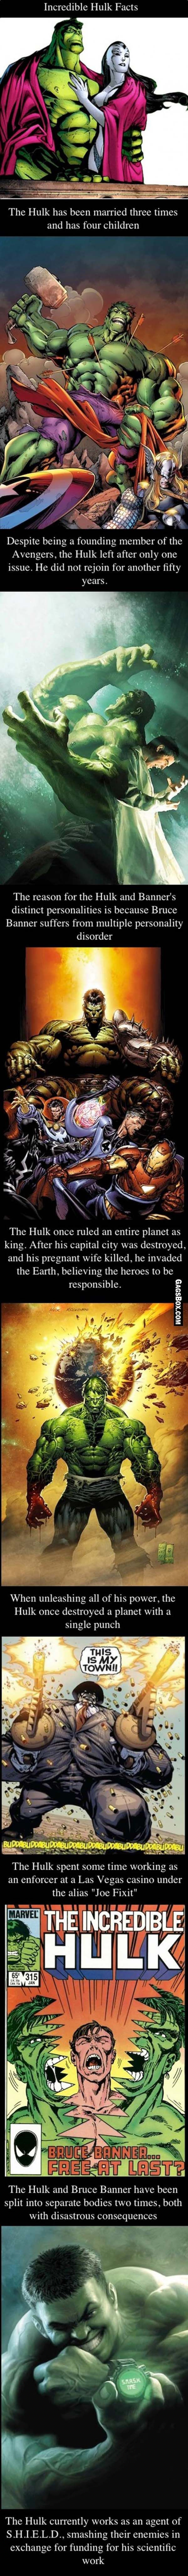 Incredible Hulk Facts